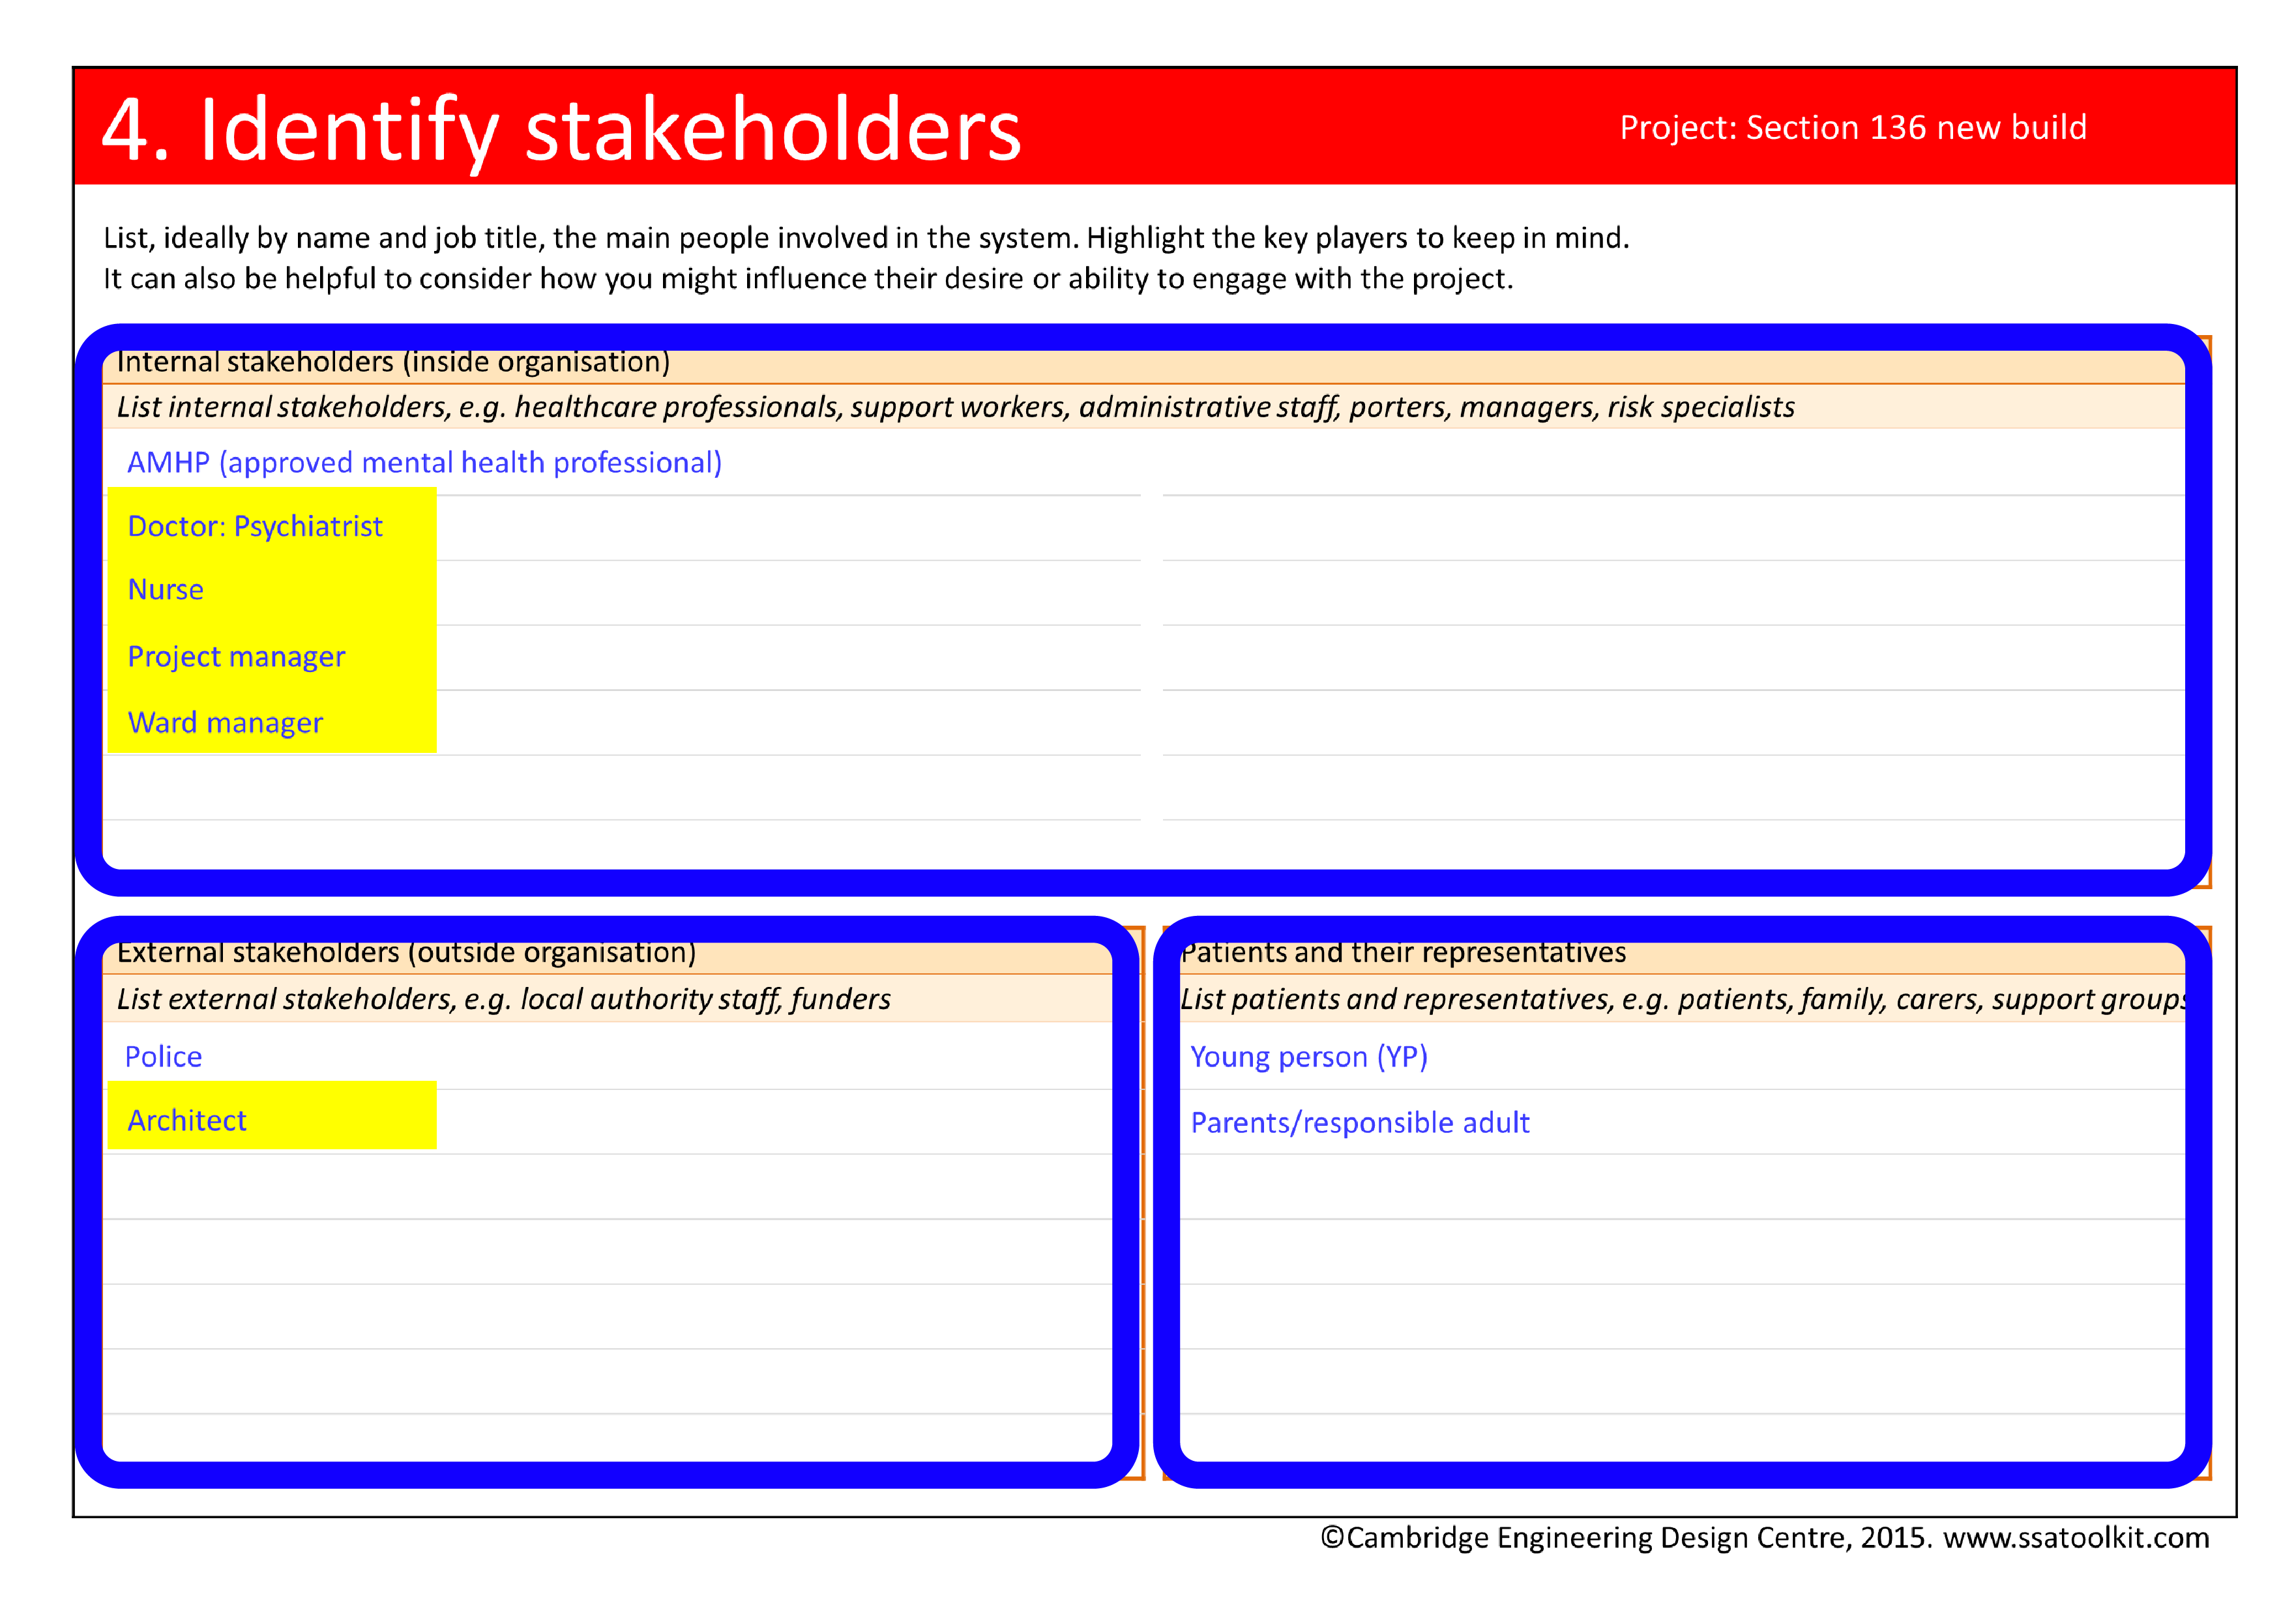 Screenshot of the Identify stakeholders page from the Section 136 case study. The full form in pdf is available from the Resources page.